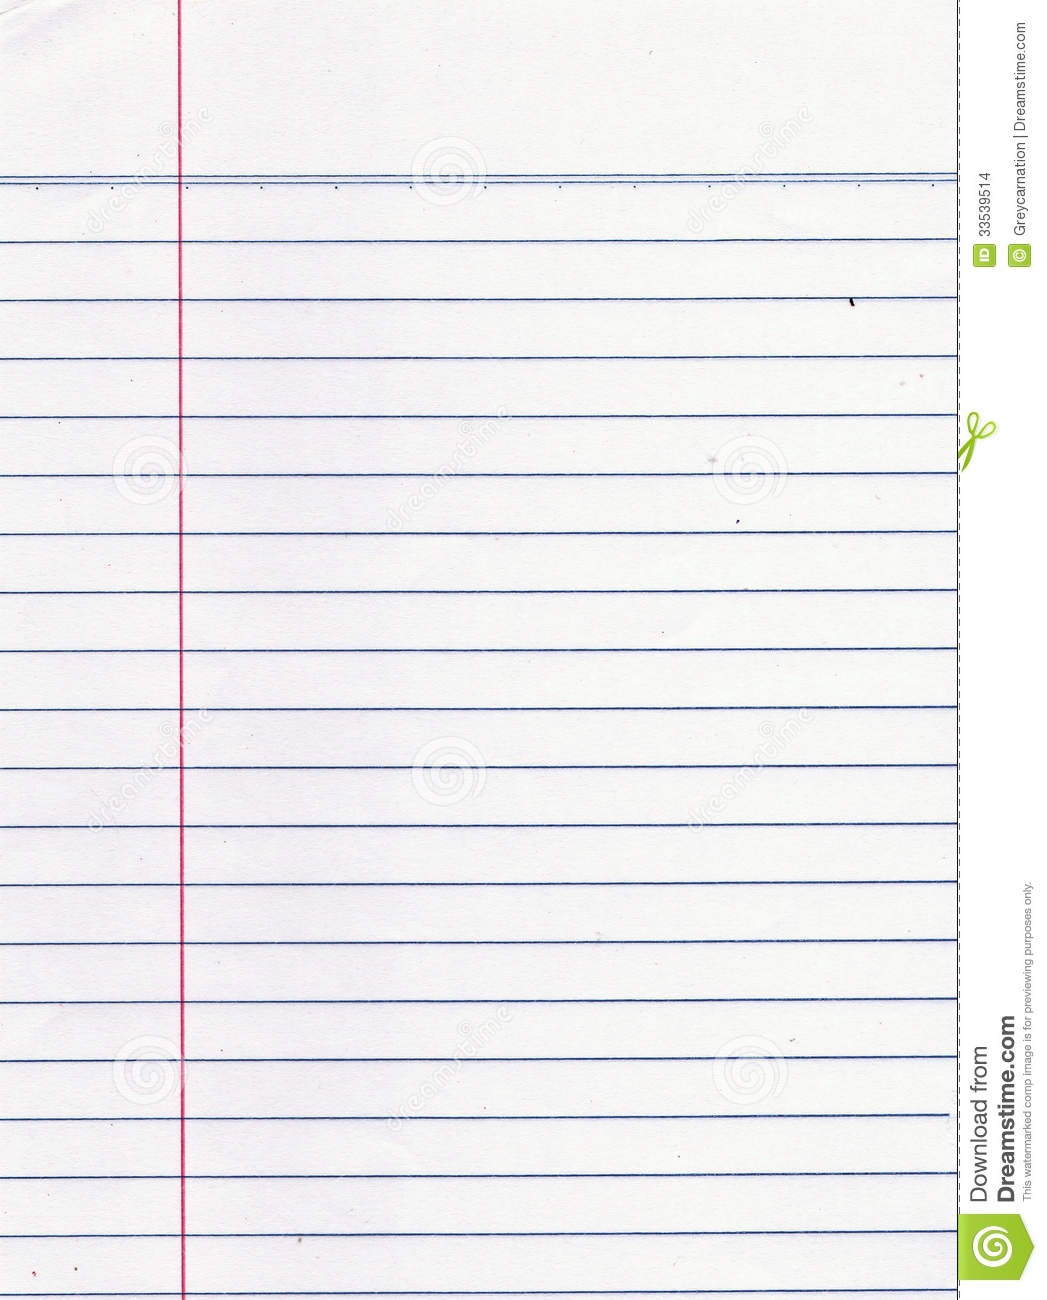 Awesome Blank Paper Sheet Intended For Blank Sheet Of Paper With Lines